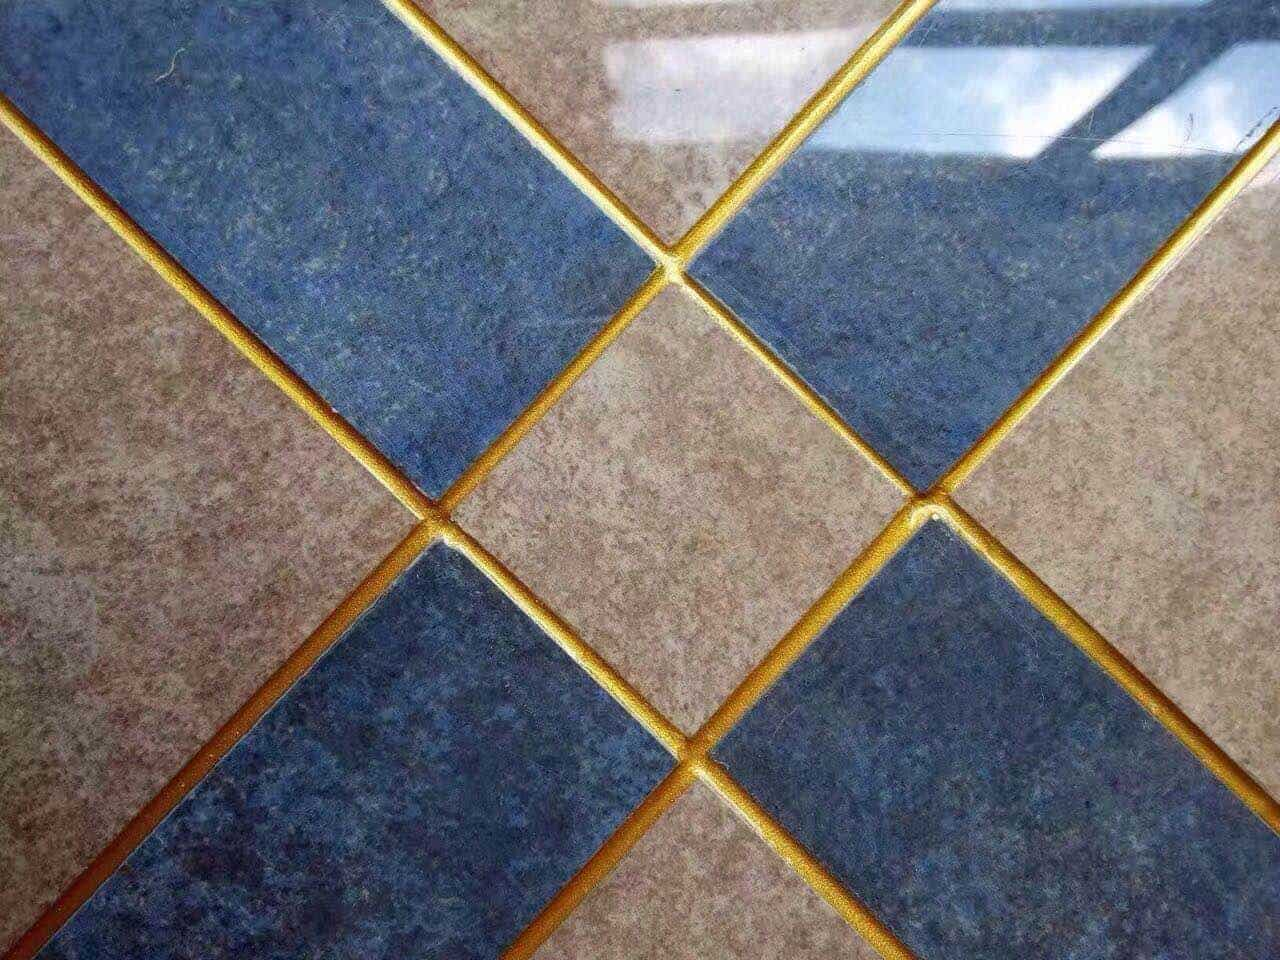 Grout Expoxy